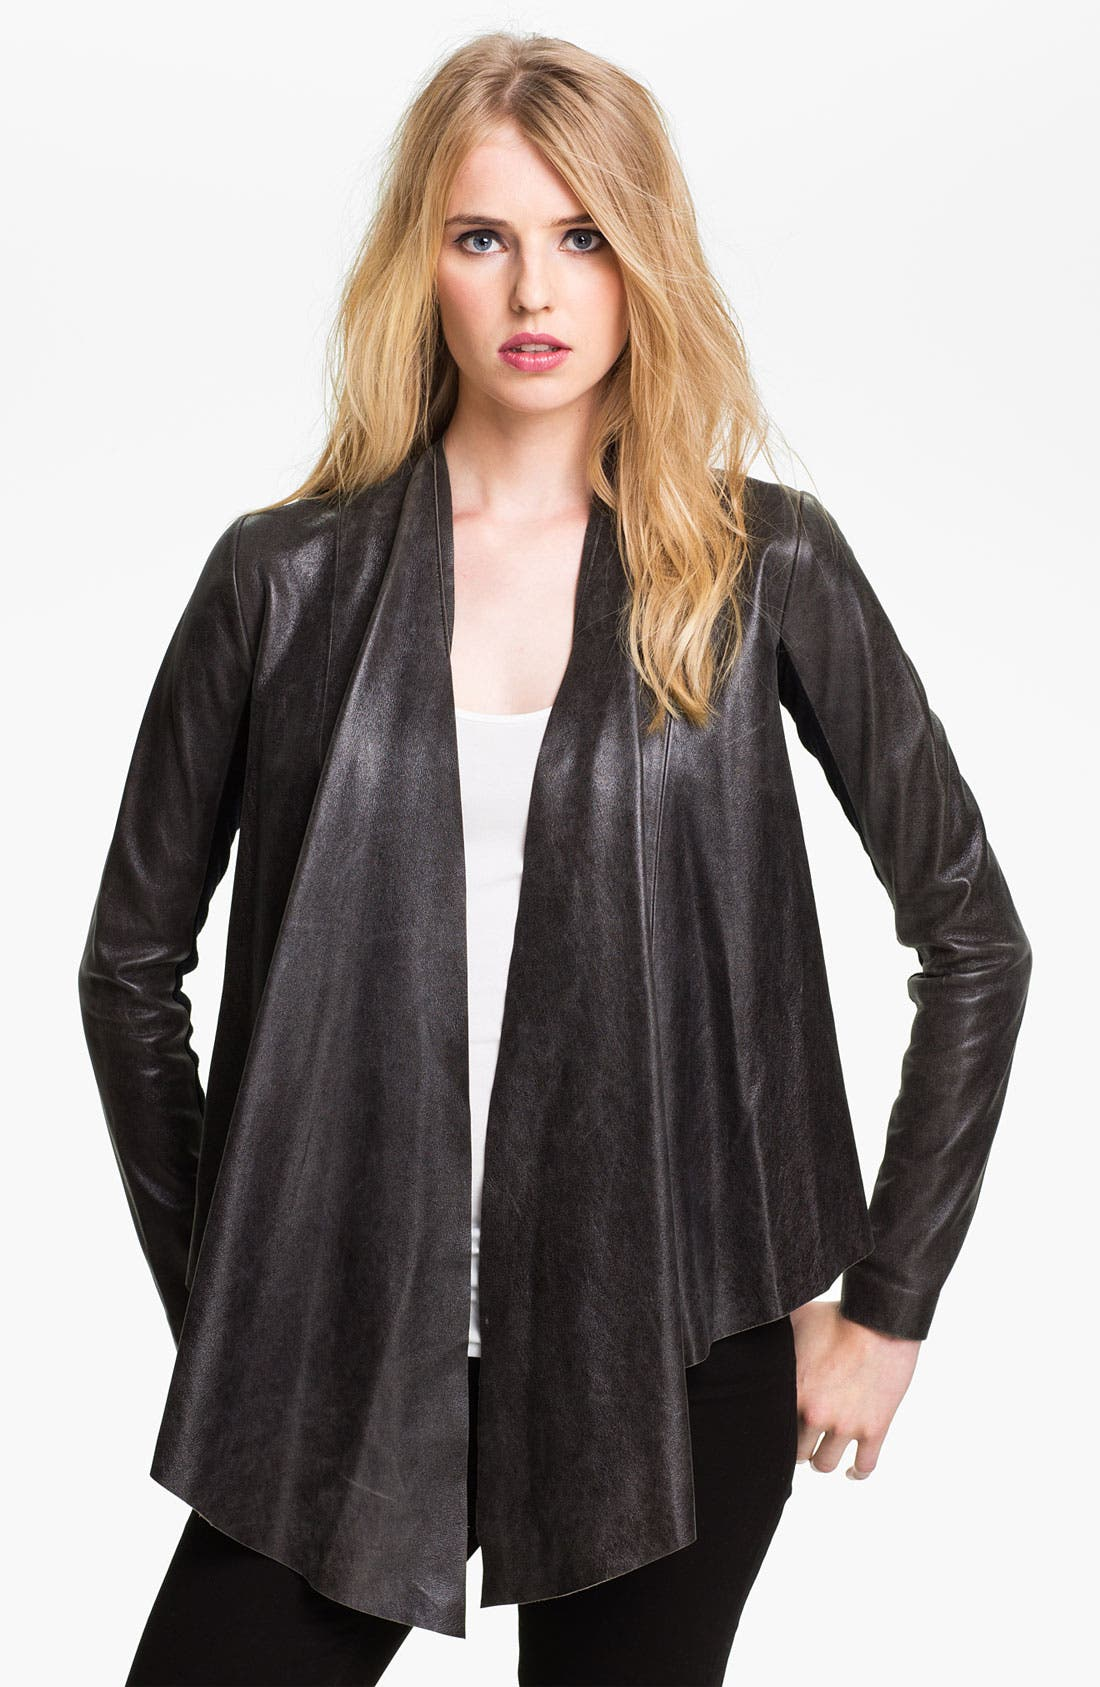 Main Image - Veda 'Libra' Drape Front Leather Jacket